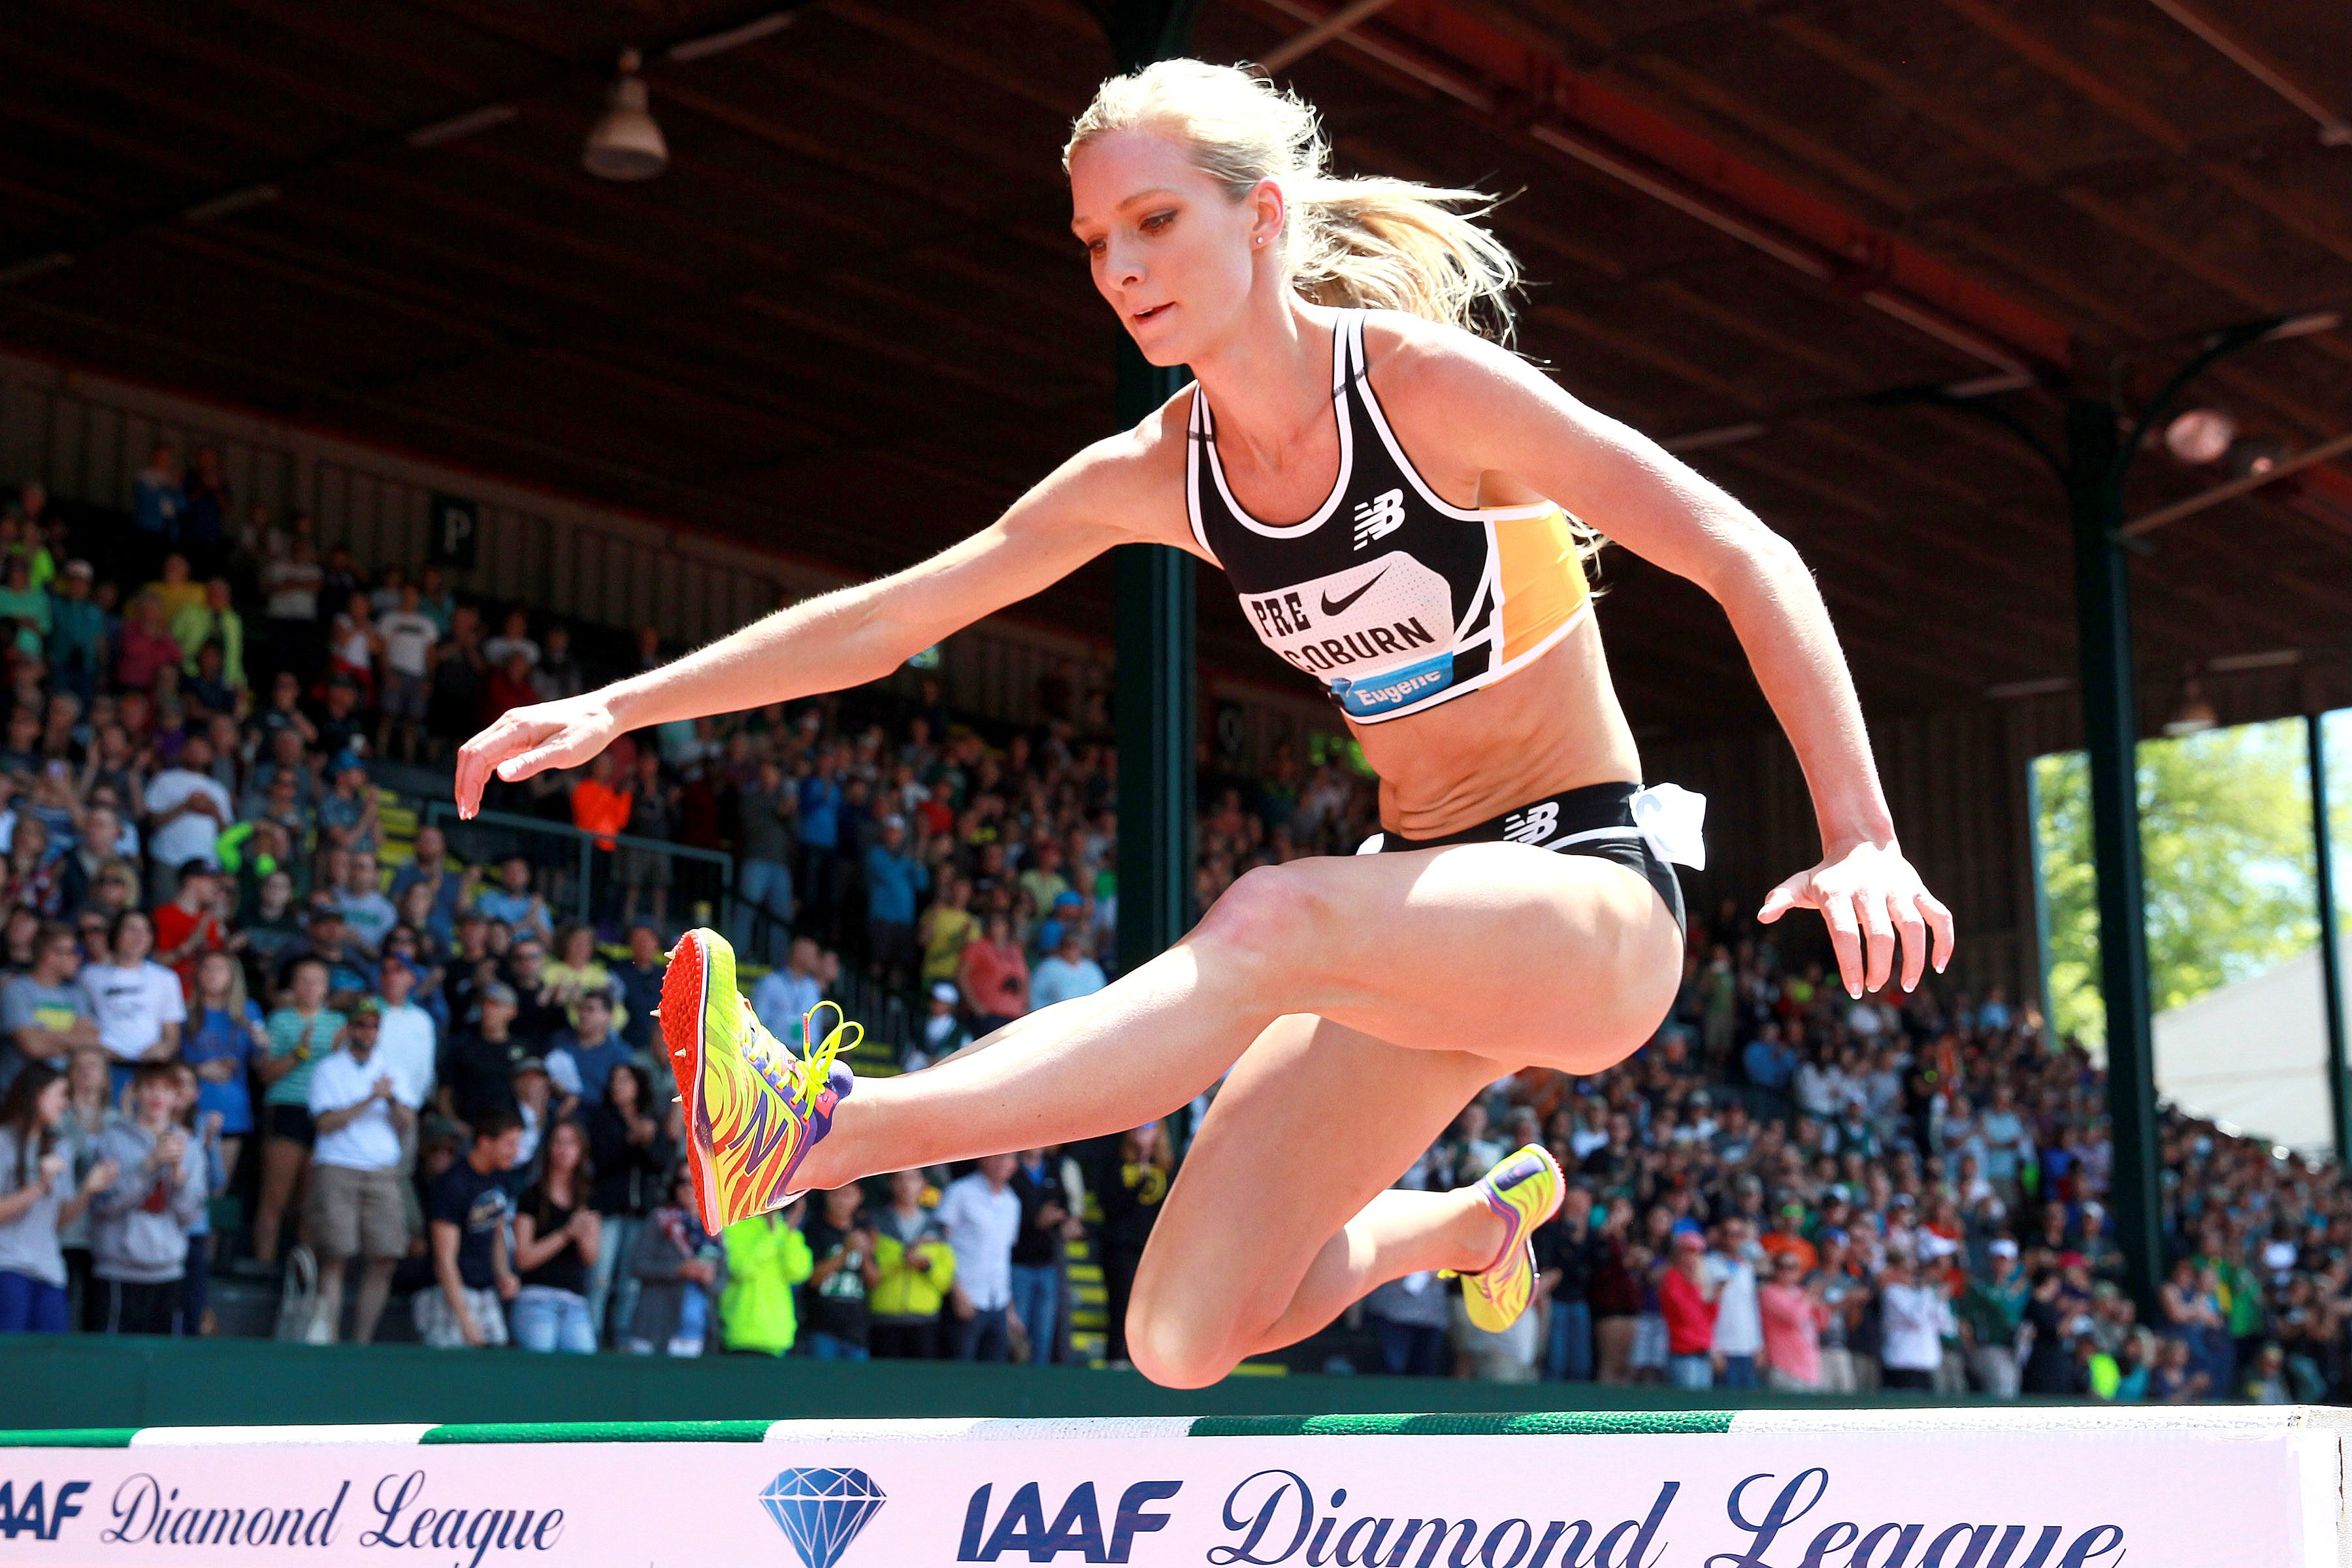 f9aeae422a Emma Coburn Sets New American Steeplechase Record